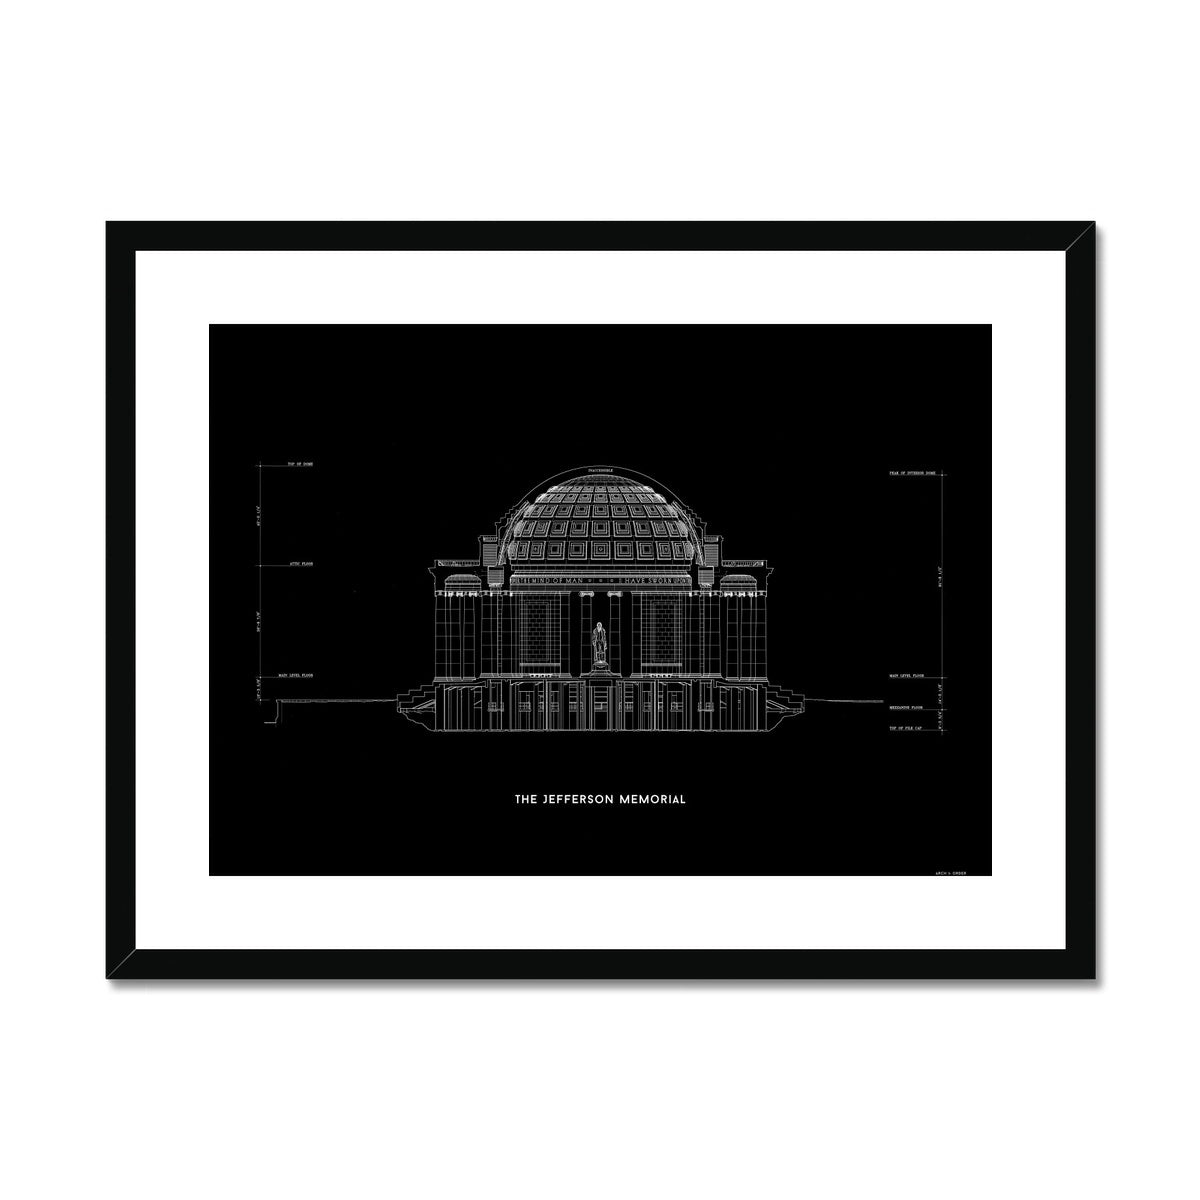 The Jefferson Memorial North Elevation Cross Section - Black -  Framed & Mounted Print